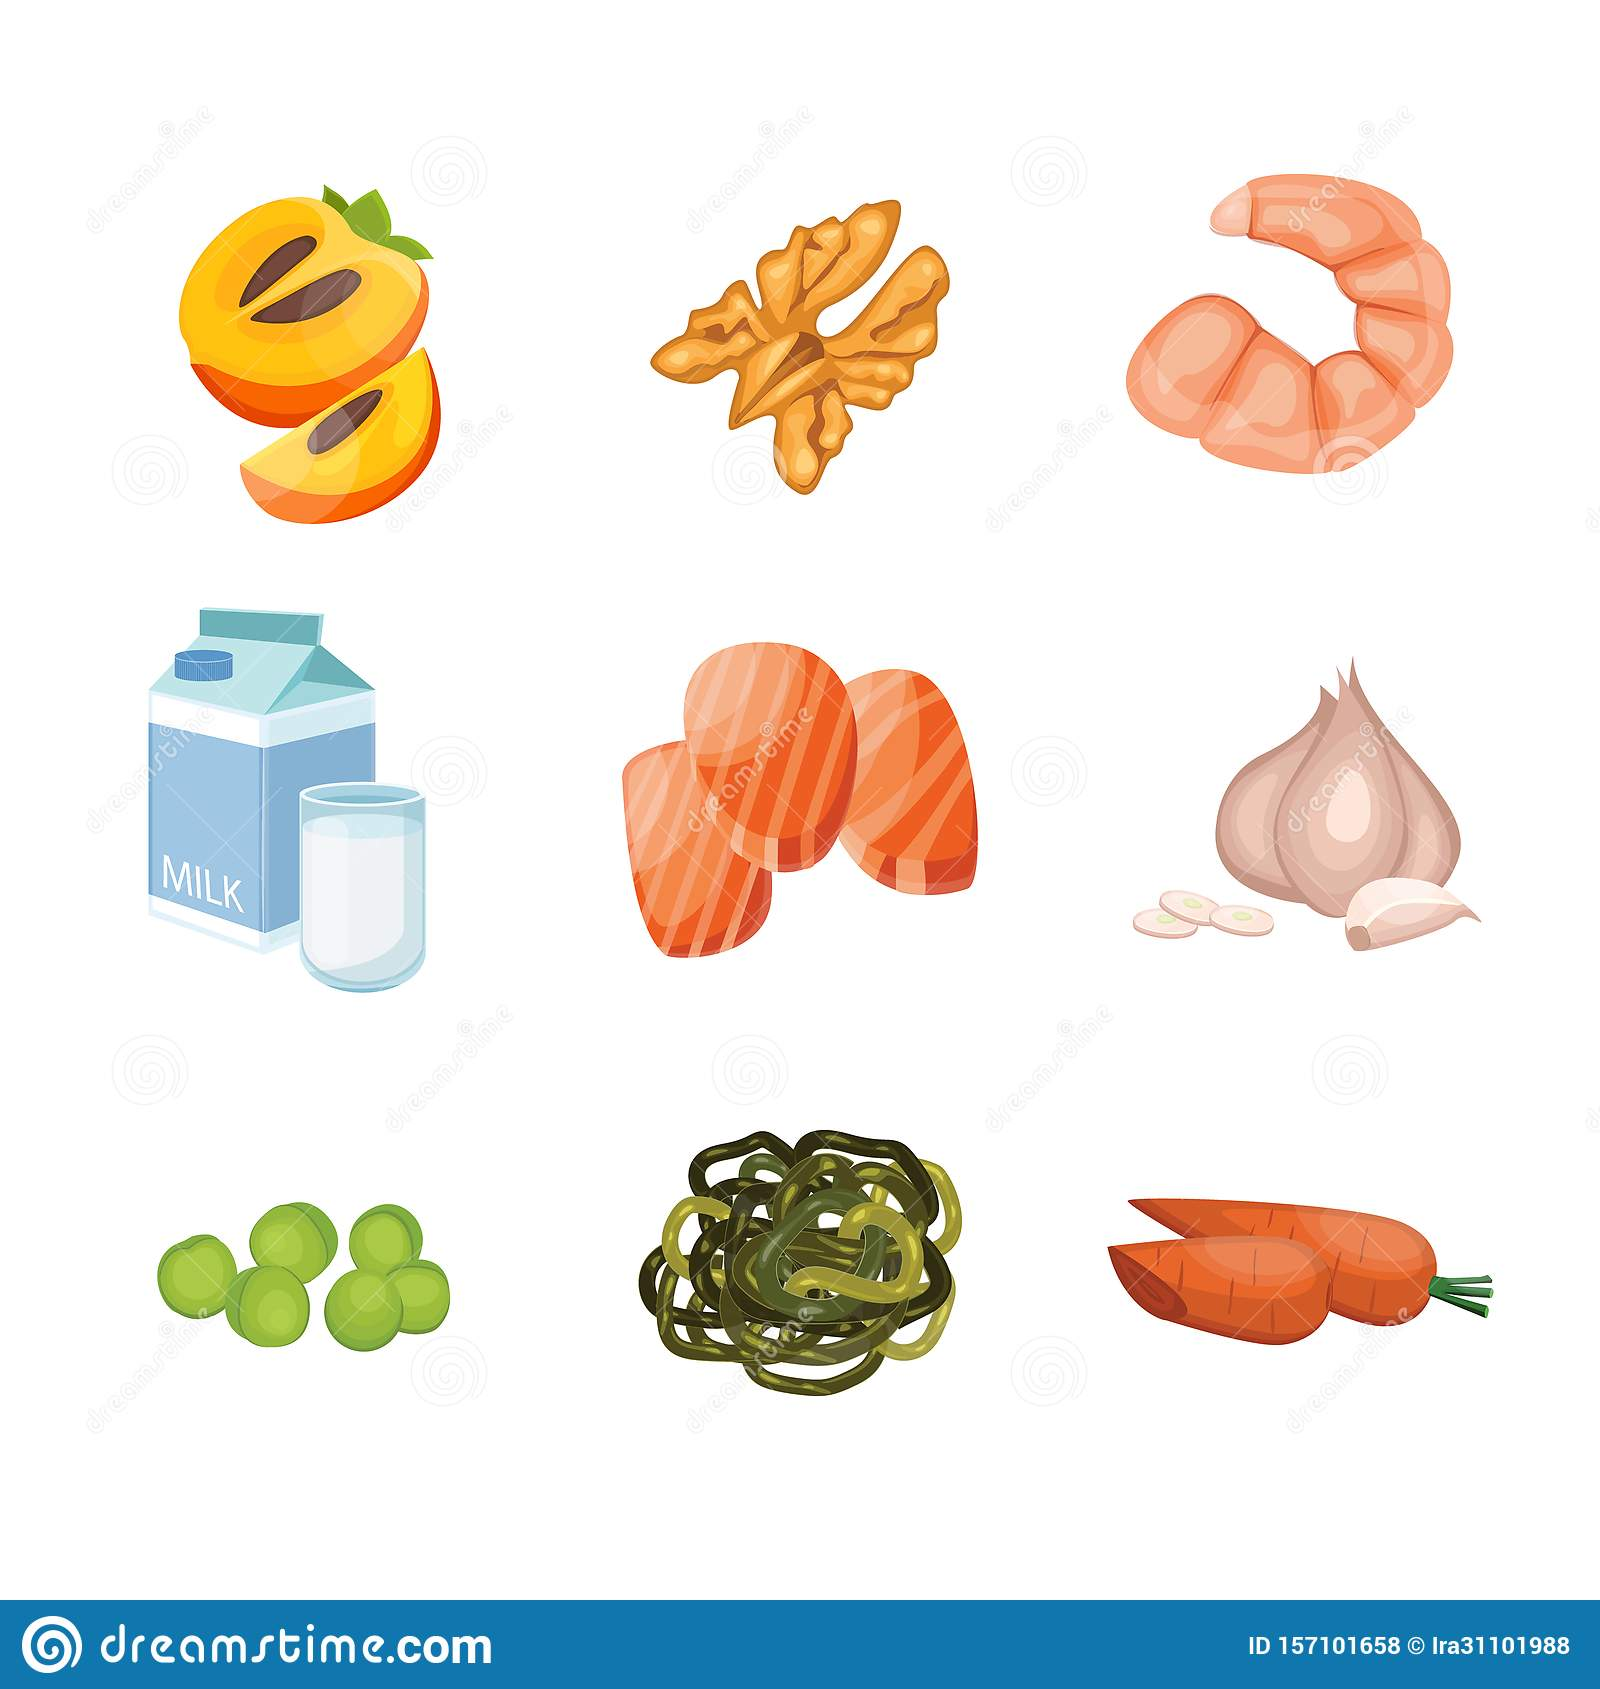 Groups of healthy fruit, vegetables, meat, fish and dairy products containing Iodine like persimmon